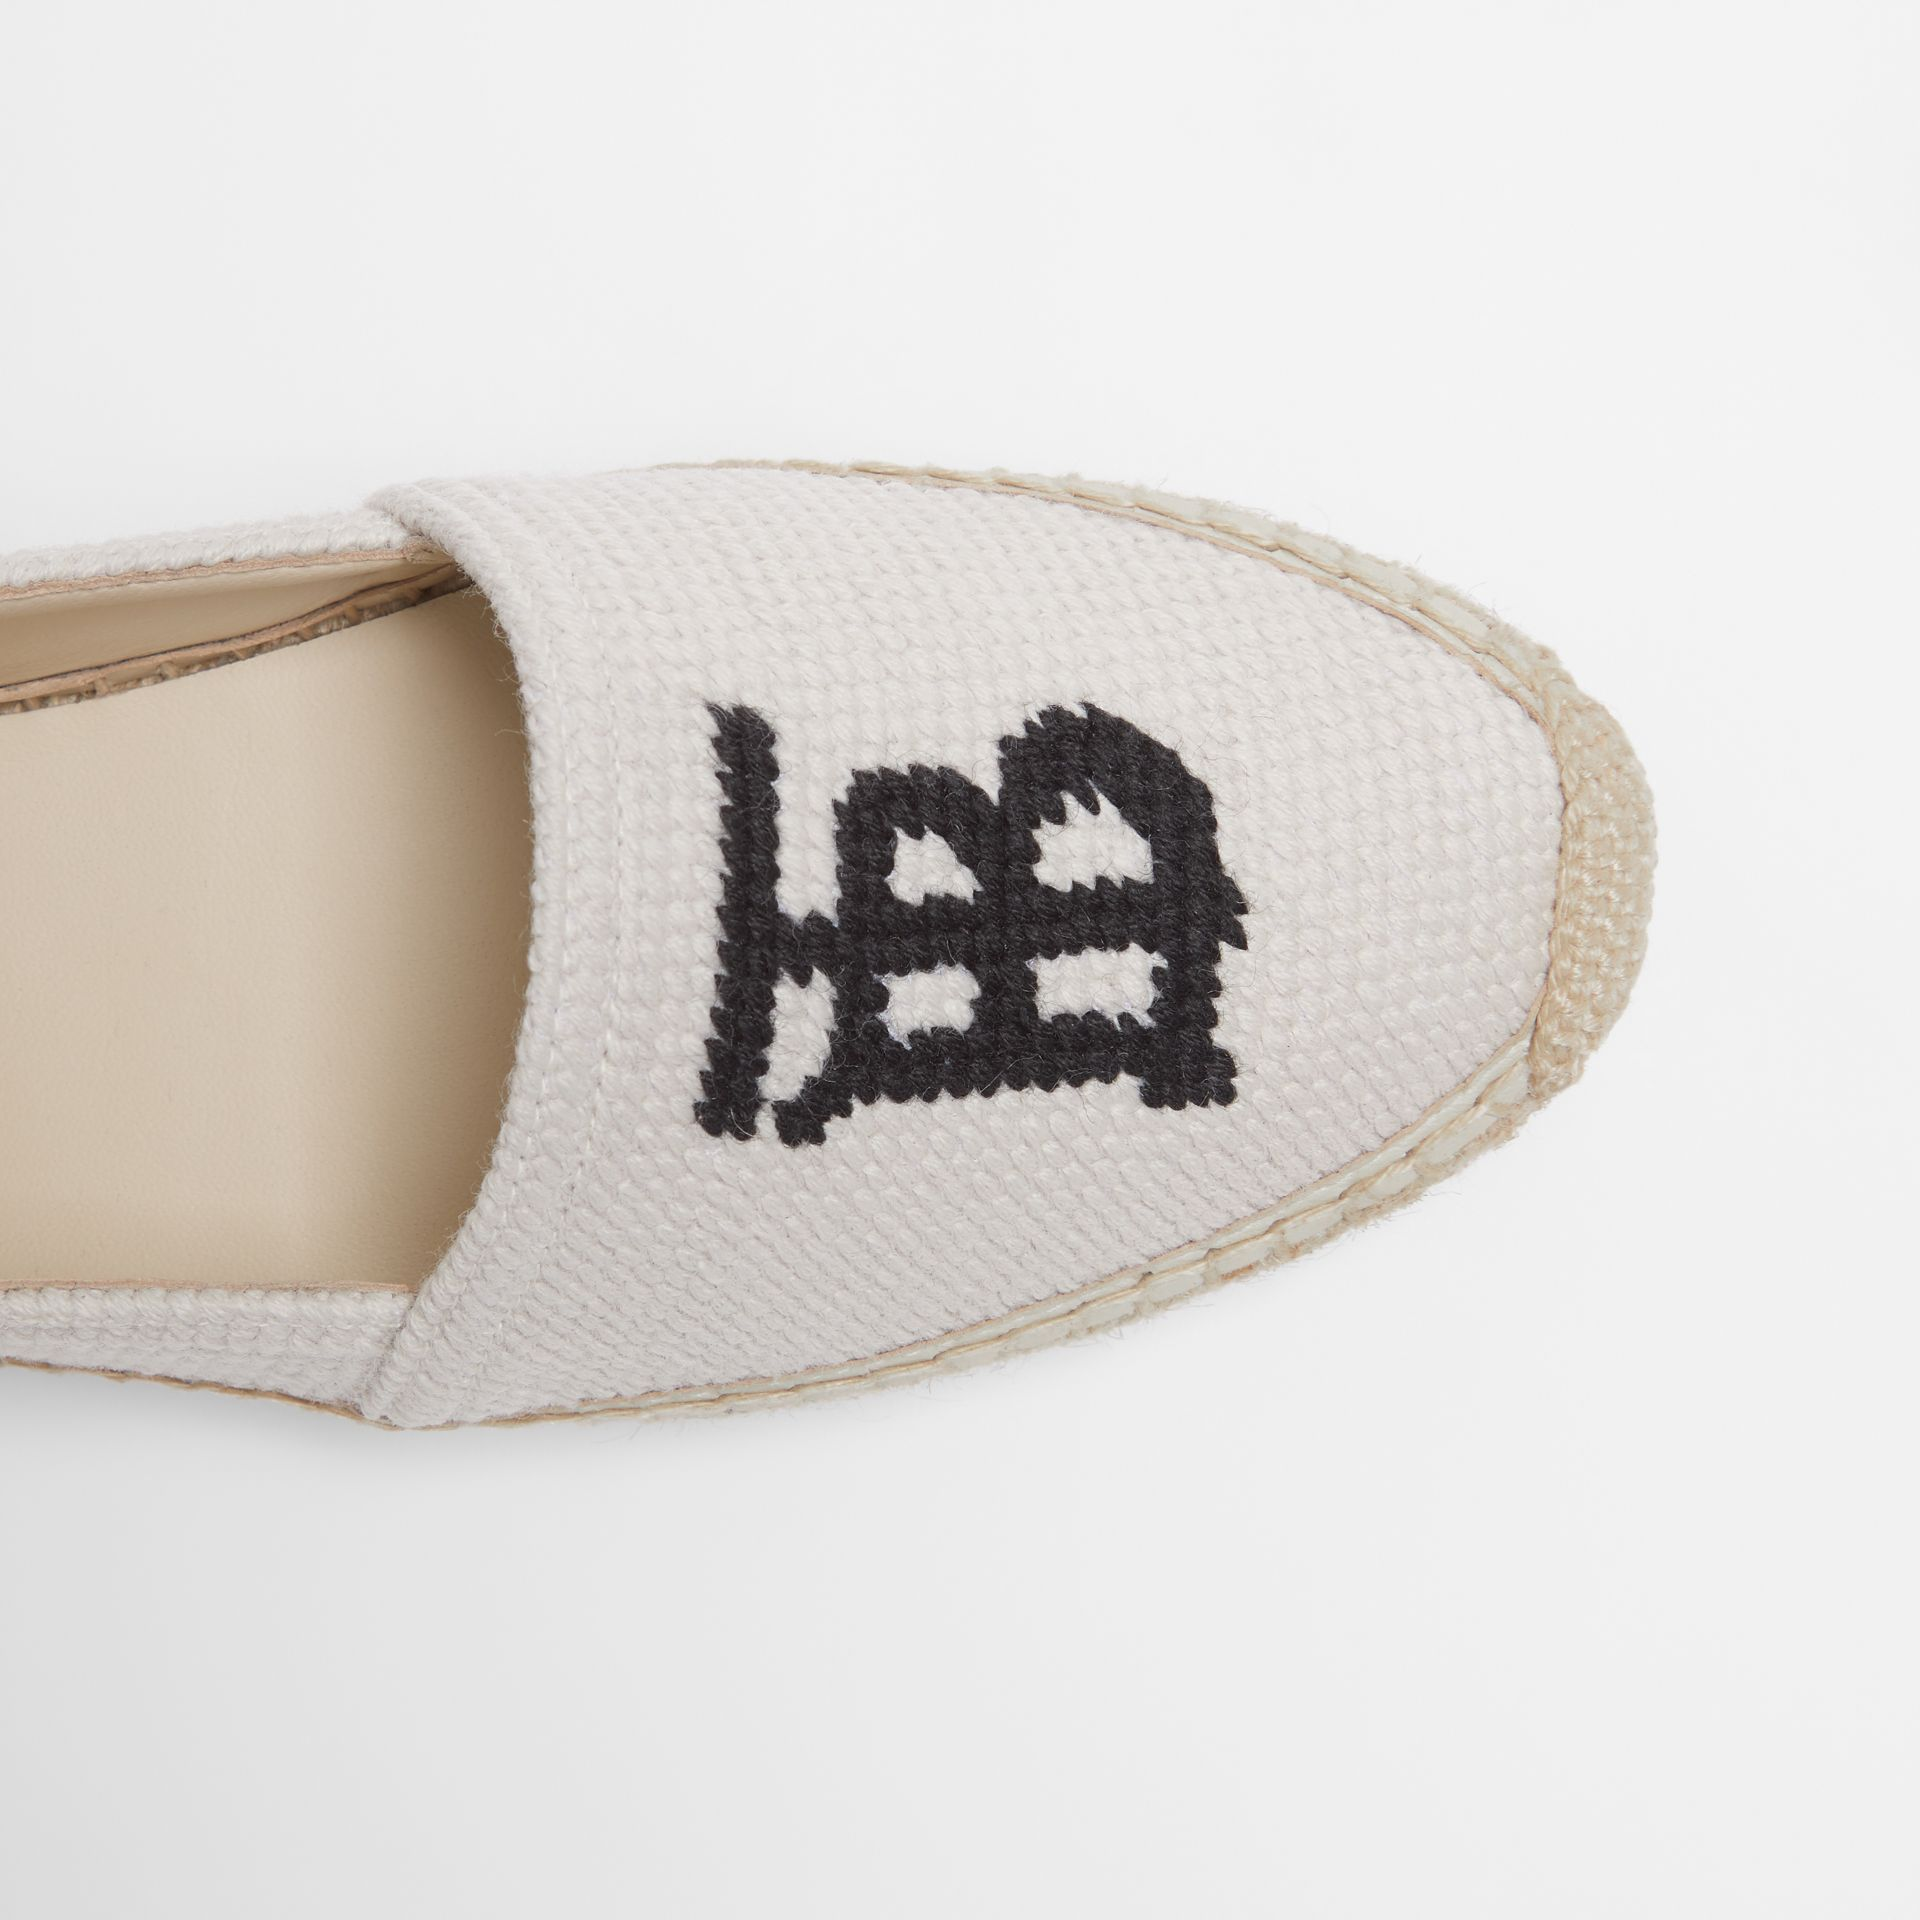 Monogram Motif Cotton and Leather Espadrilles in Ecru/black | Burberry Singapore - gallery image 1